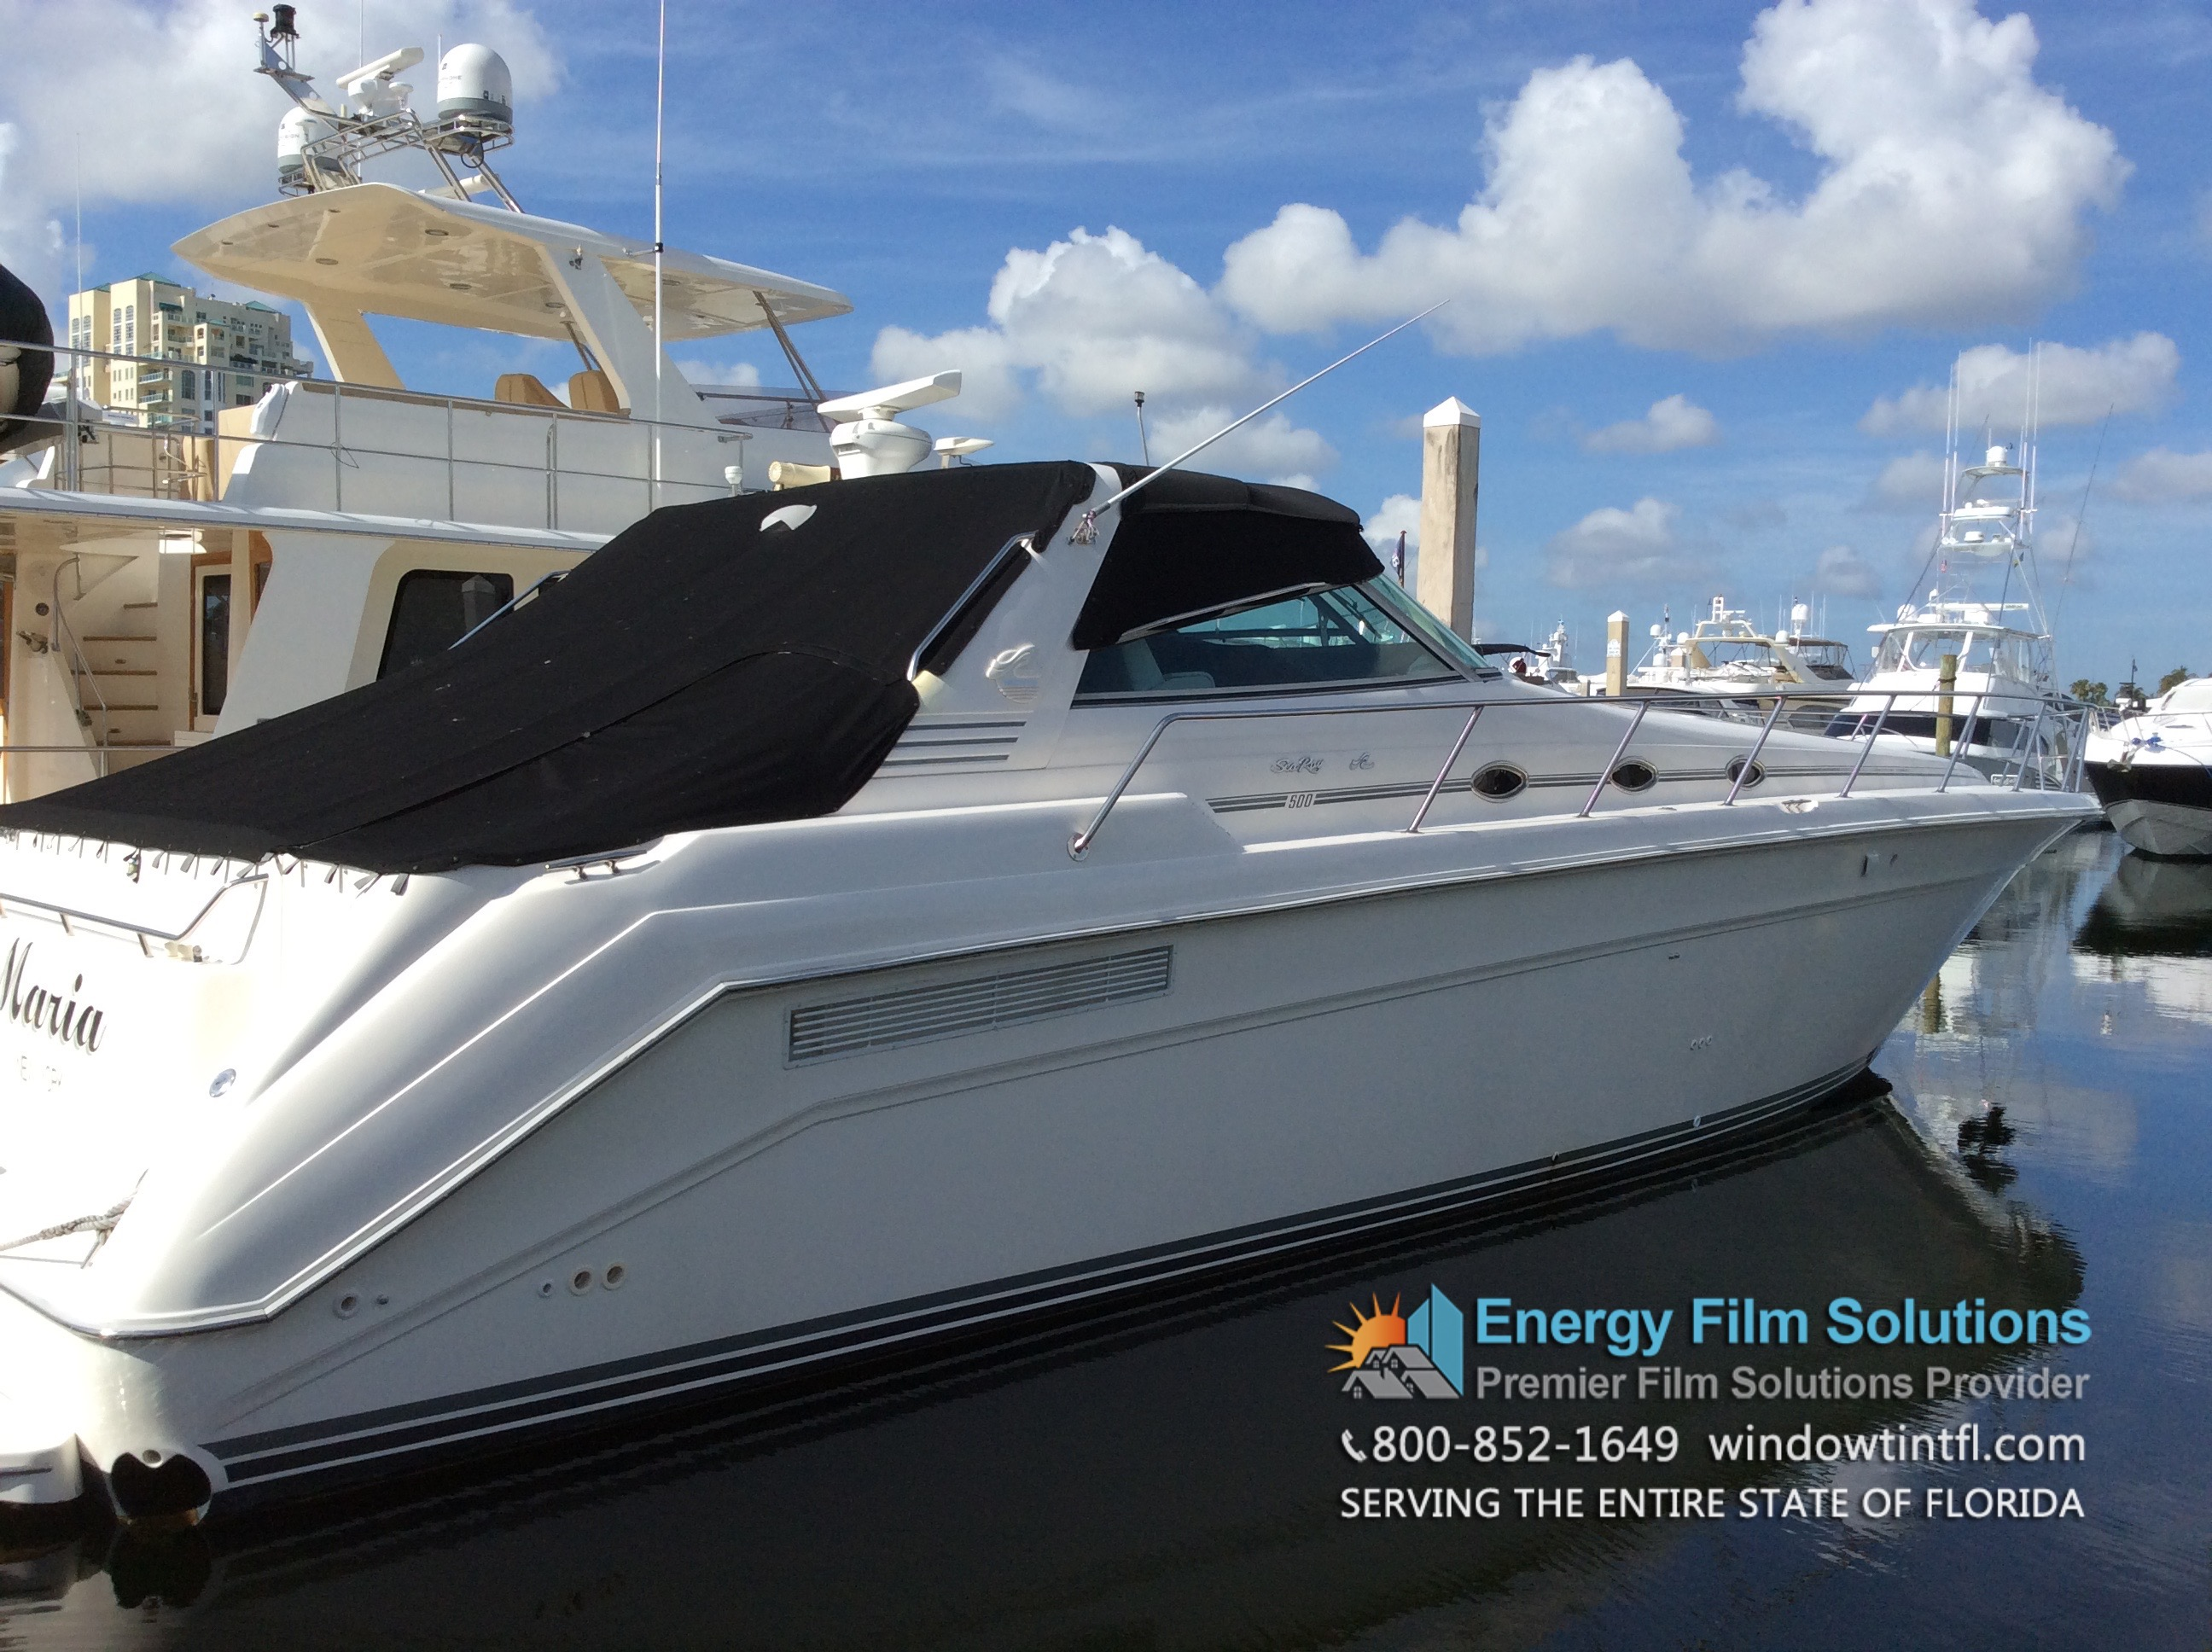 Marine Window Tinting For Yacht Boat In Fort Lauderdale